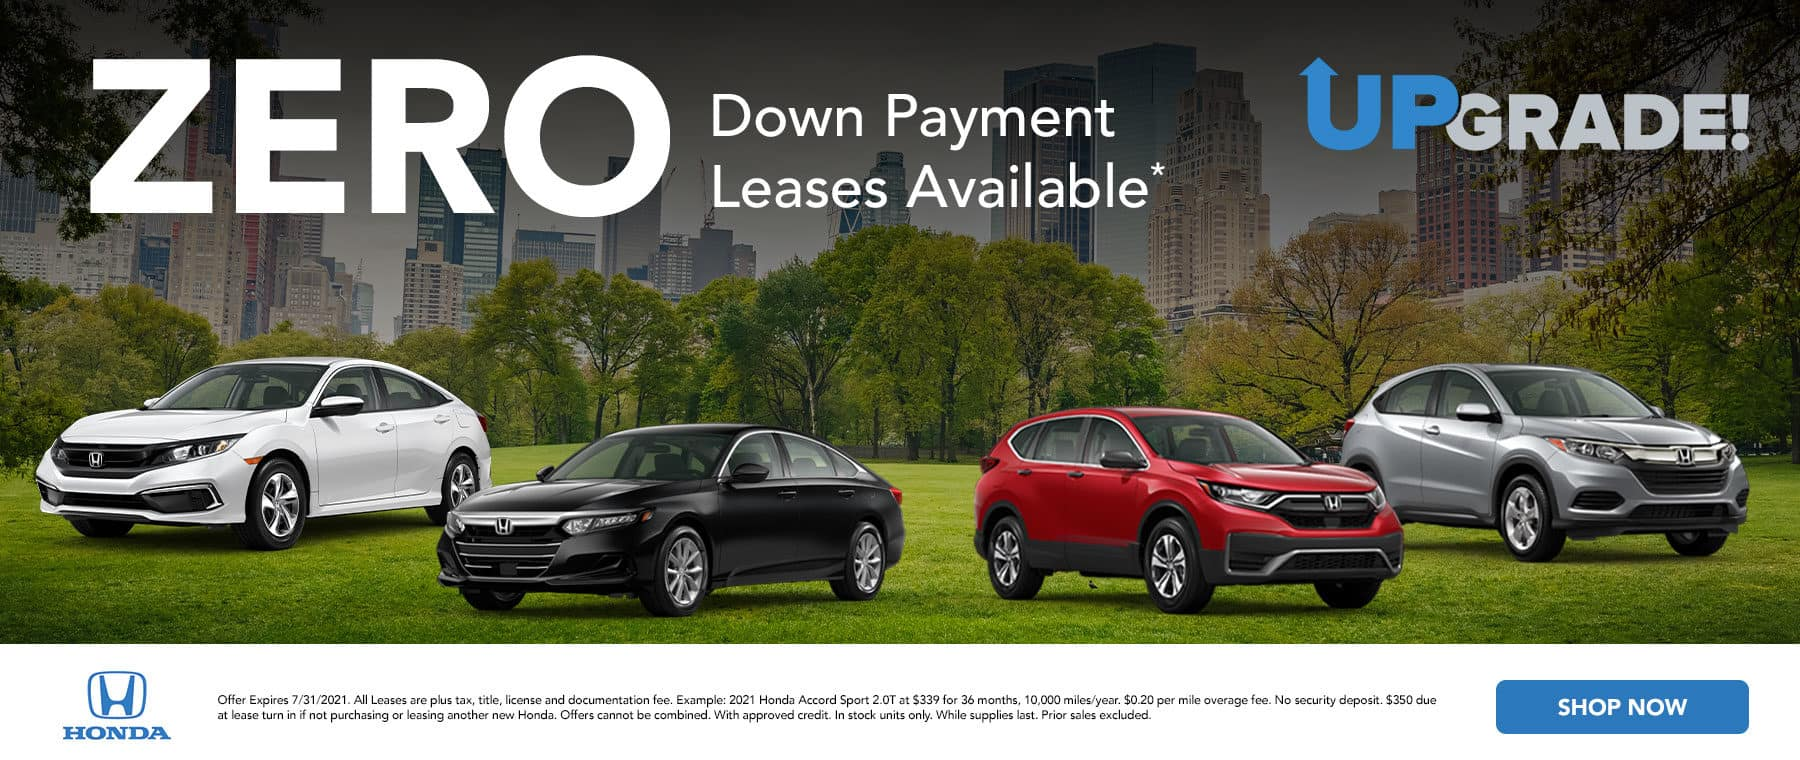 $0 Down Payment Leases Available*